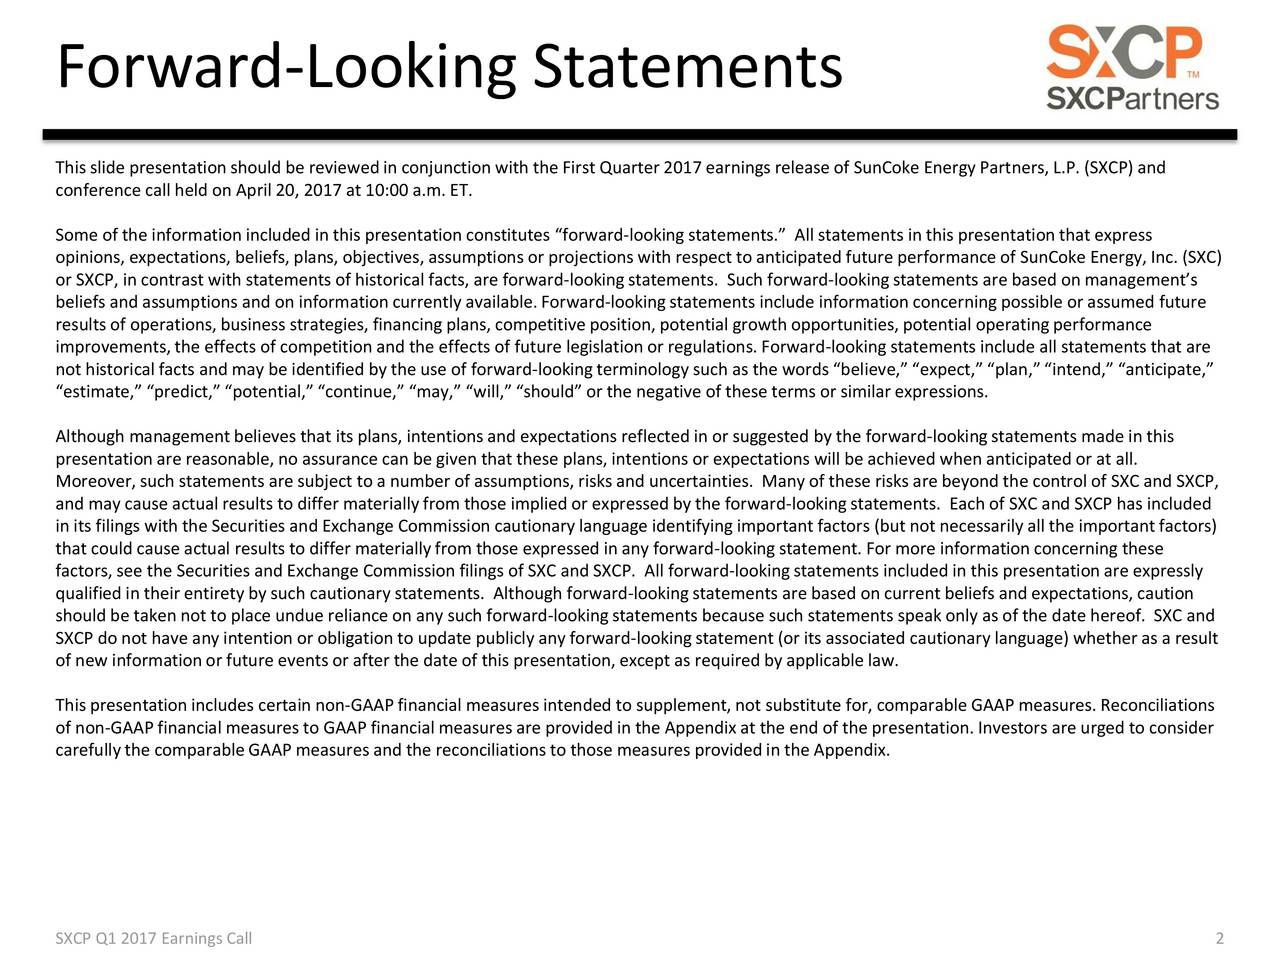 This slide presentation should be reviewedin conjunction with the First Quarter 2017 earnings release of SunCoke Energy Partners, L.P. (SXCP) and conference call held on April 20, 2017 at 10:00 a.m. ET. Some of the information included in this presentation constitutes forward-looking statements. All statements in this presentation that express opinions, expectations, beliefs, plans, objectives, assumptions or projections with respect to anticipated future performance of SunCoke Energy, Inc. (SXC) or SXCP, in contrast with statements of historical facts, are forward-lookingstatements. Such forward-lookingstatements are based on managements beliefs and assumptions and on information currently available. Forward-lookingstatements include information concerning possible or assumed future results of operations, business strategies, financing plans, competitive position, potential growth opportunities, potential operating performance improvements, the effects of competition and the effects of future legislation or regulations. Forward-looking statements include all statements that are not historical facts and may be identified by the use of forward-lookingterminology such as the words believe, expect, plan, intend, anticipate, estimate, predict, potential, continue, may, will, should or the negative of these terms or similar expressions. Although management believes that its plans, intentions and expectations reflected in or suggested by the forward-lookingstatements made in this presentation are reasonable, no assurance can be given that these plans, intentions or expectations will be achieved when anticipated or at all. Moreover, such statements are subject to a number of assumptions, risks and uncertainties. Many of these risks are beyond the control of SXC and SXCP, and may cause actual results to differ materially from those implied or expressed by the forward-lookingstatements. Each of SXC and SXCP has included in its filings with the Securities and Exchange Commiss